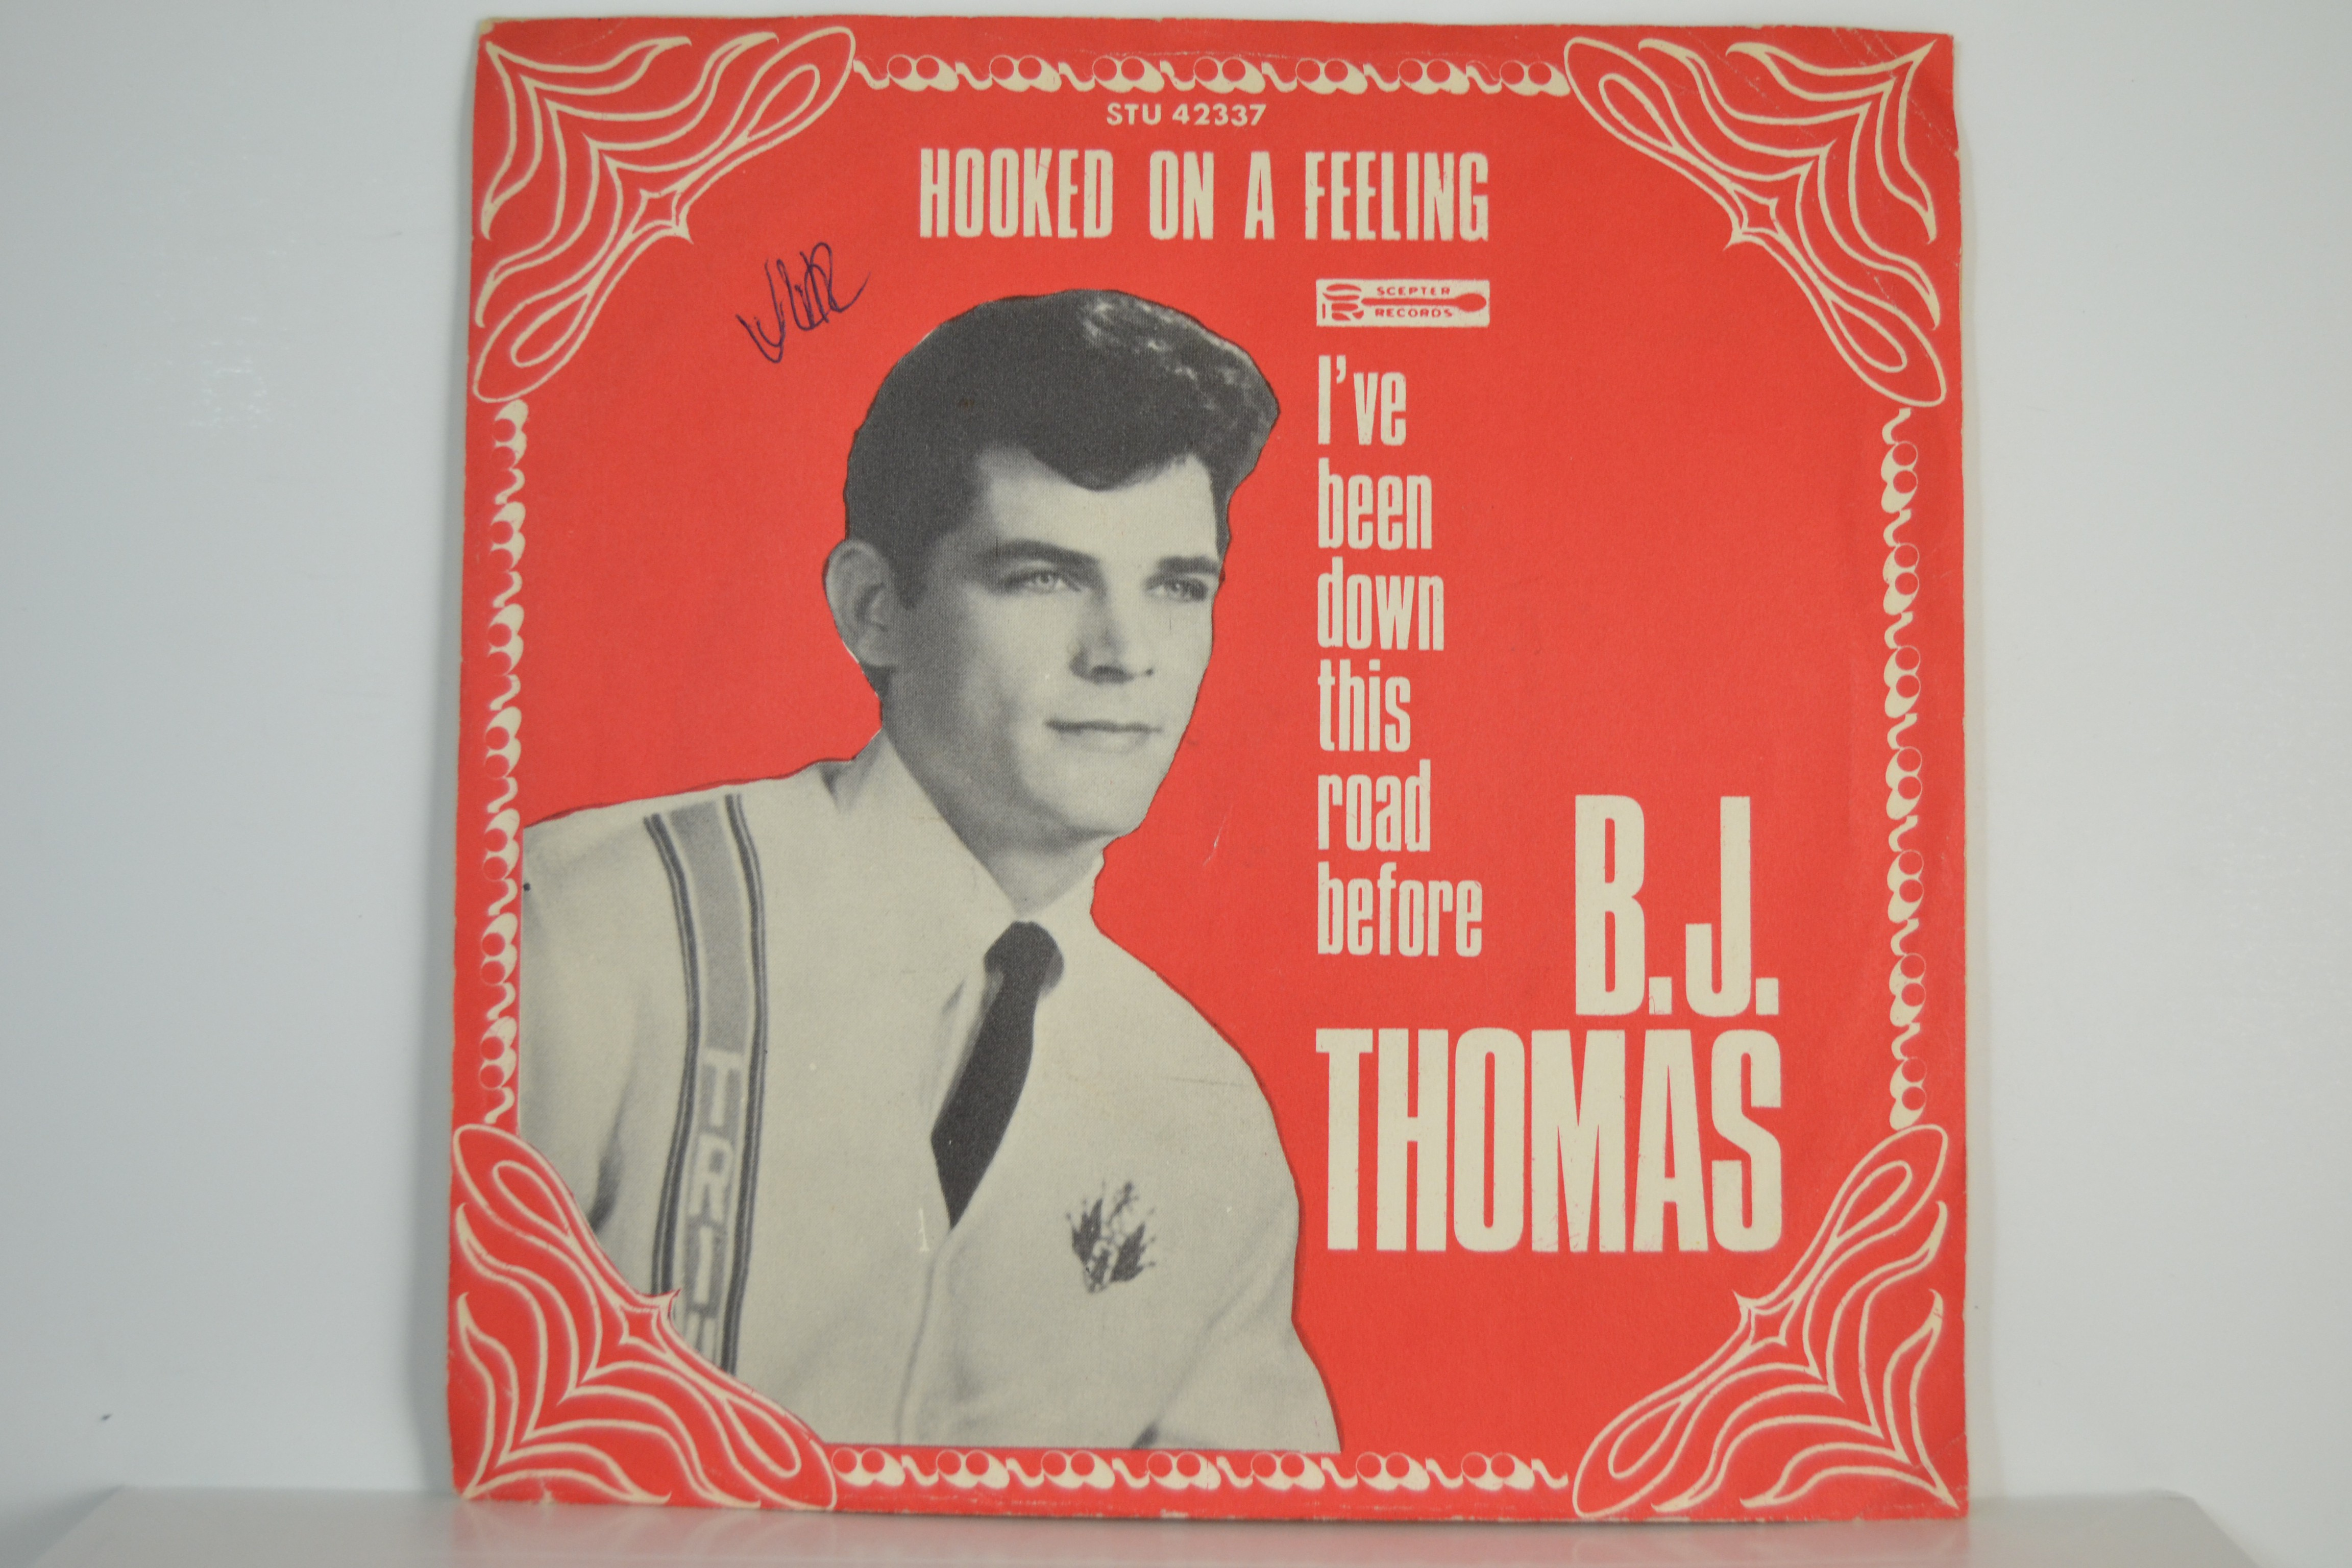 B. J. THOMAS : Hooked on a feeling / I've been down this road before